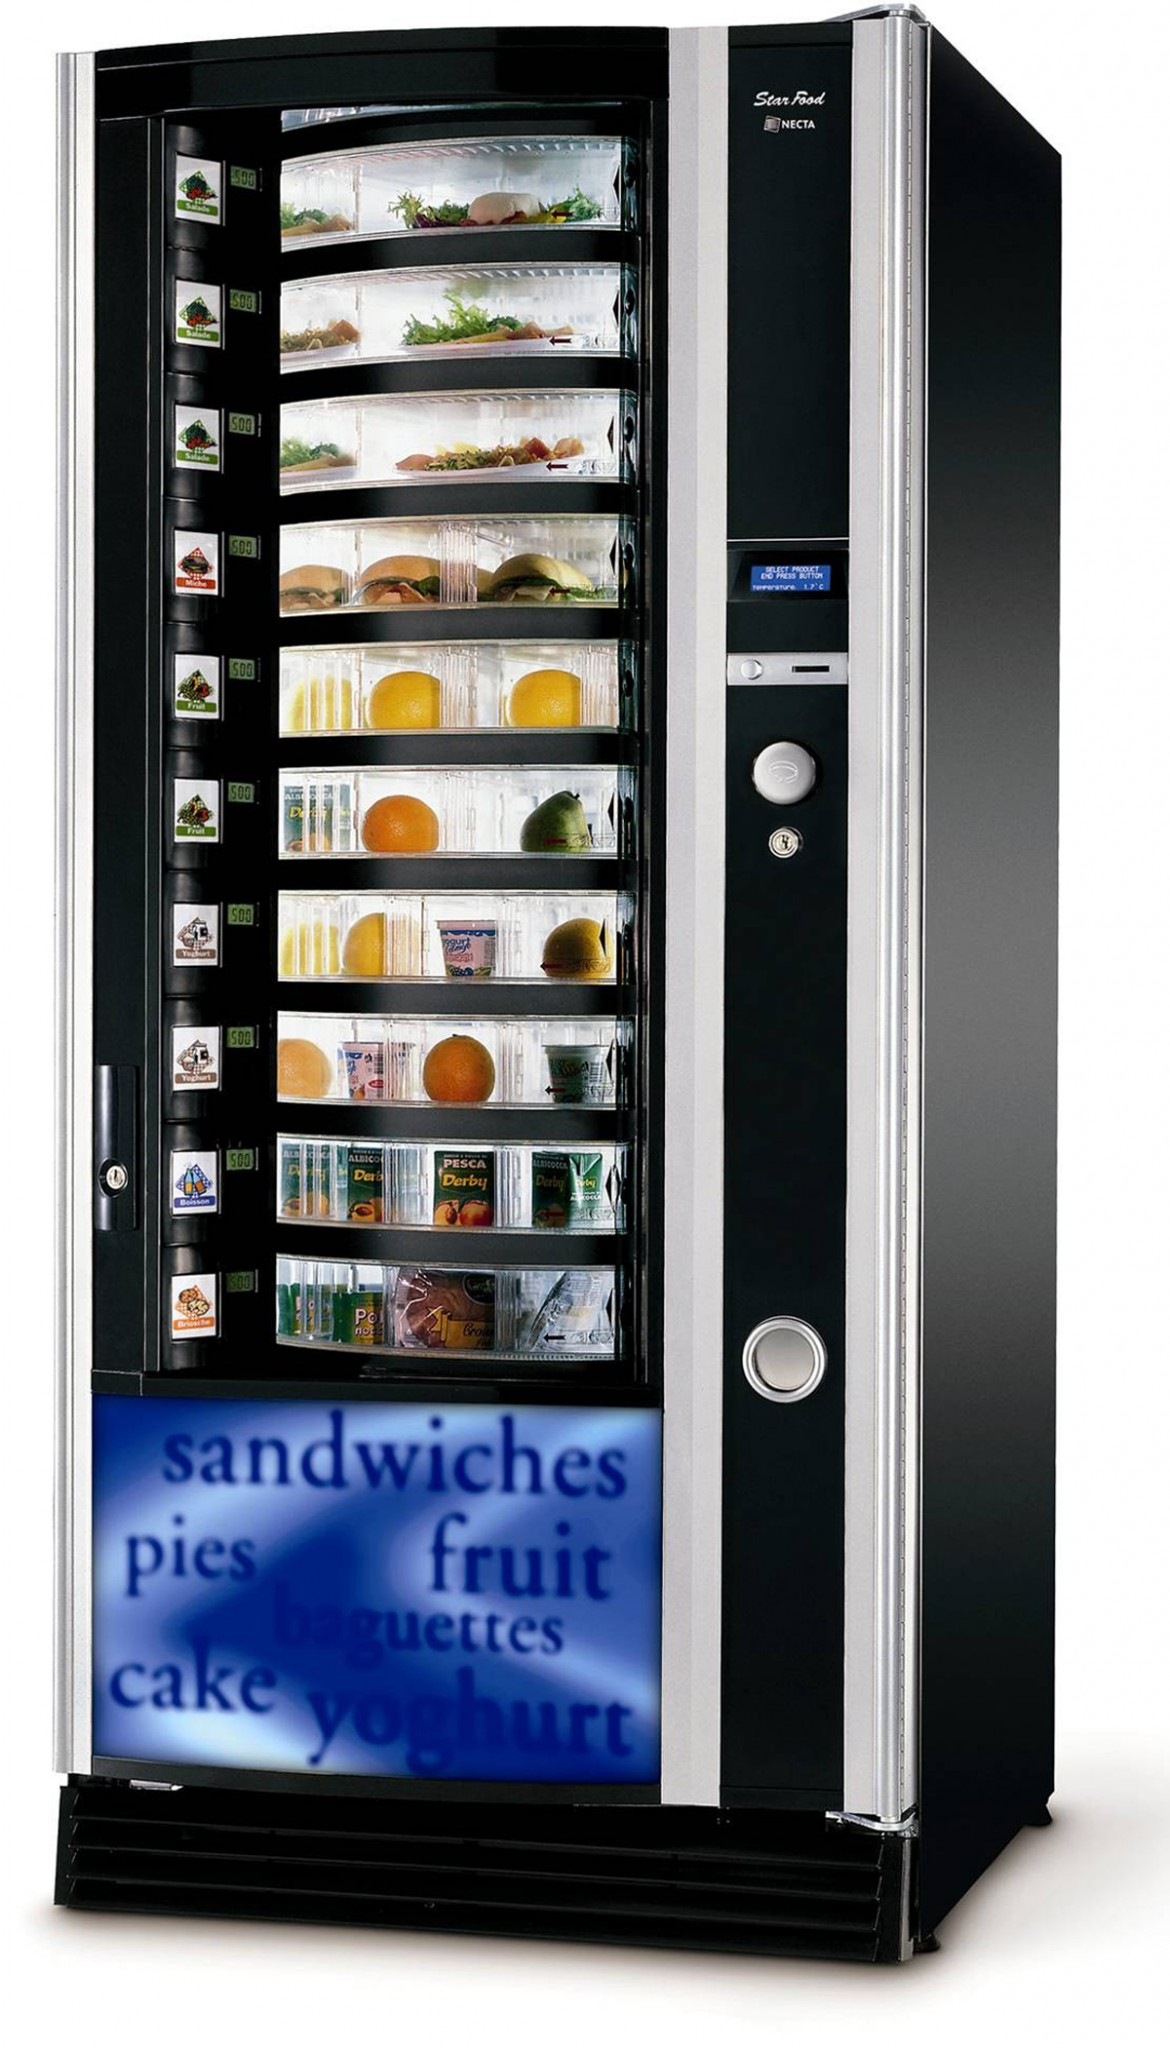 starfood fresh food vending machine executive vendingexecutive vending. Black Bedroom Furniture Sets. Home Design Ideas